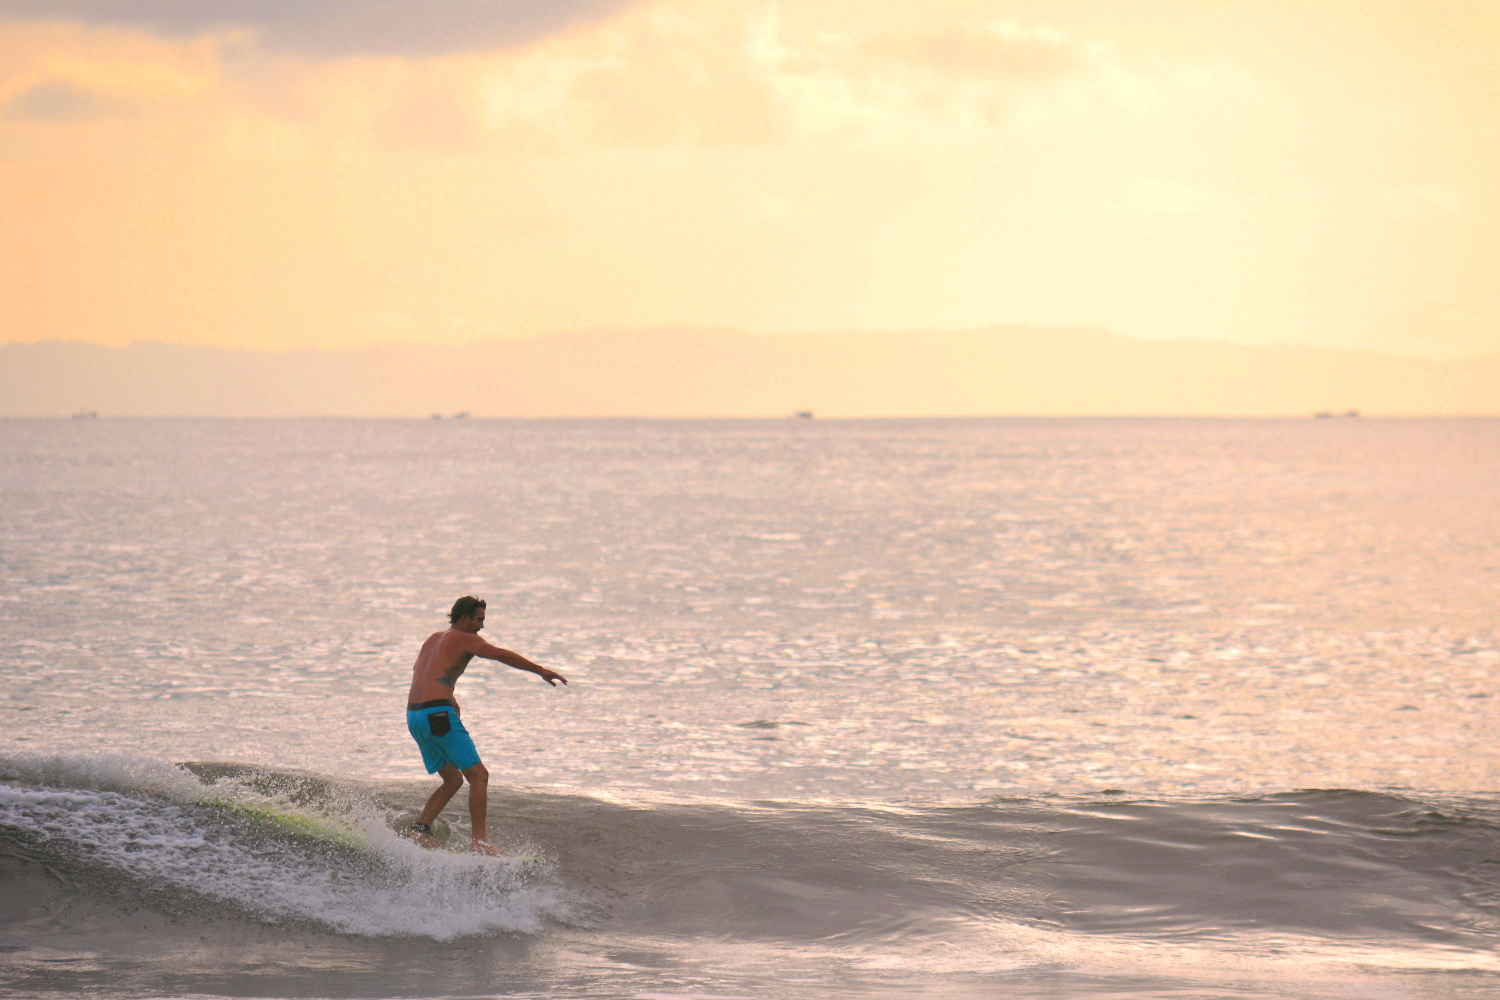 Longboarding in Bali can be rewarding, just as longtime Bali resident and longboarder Mike Horton